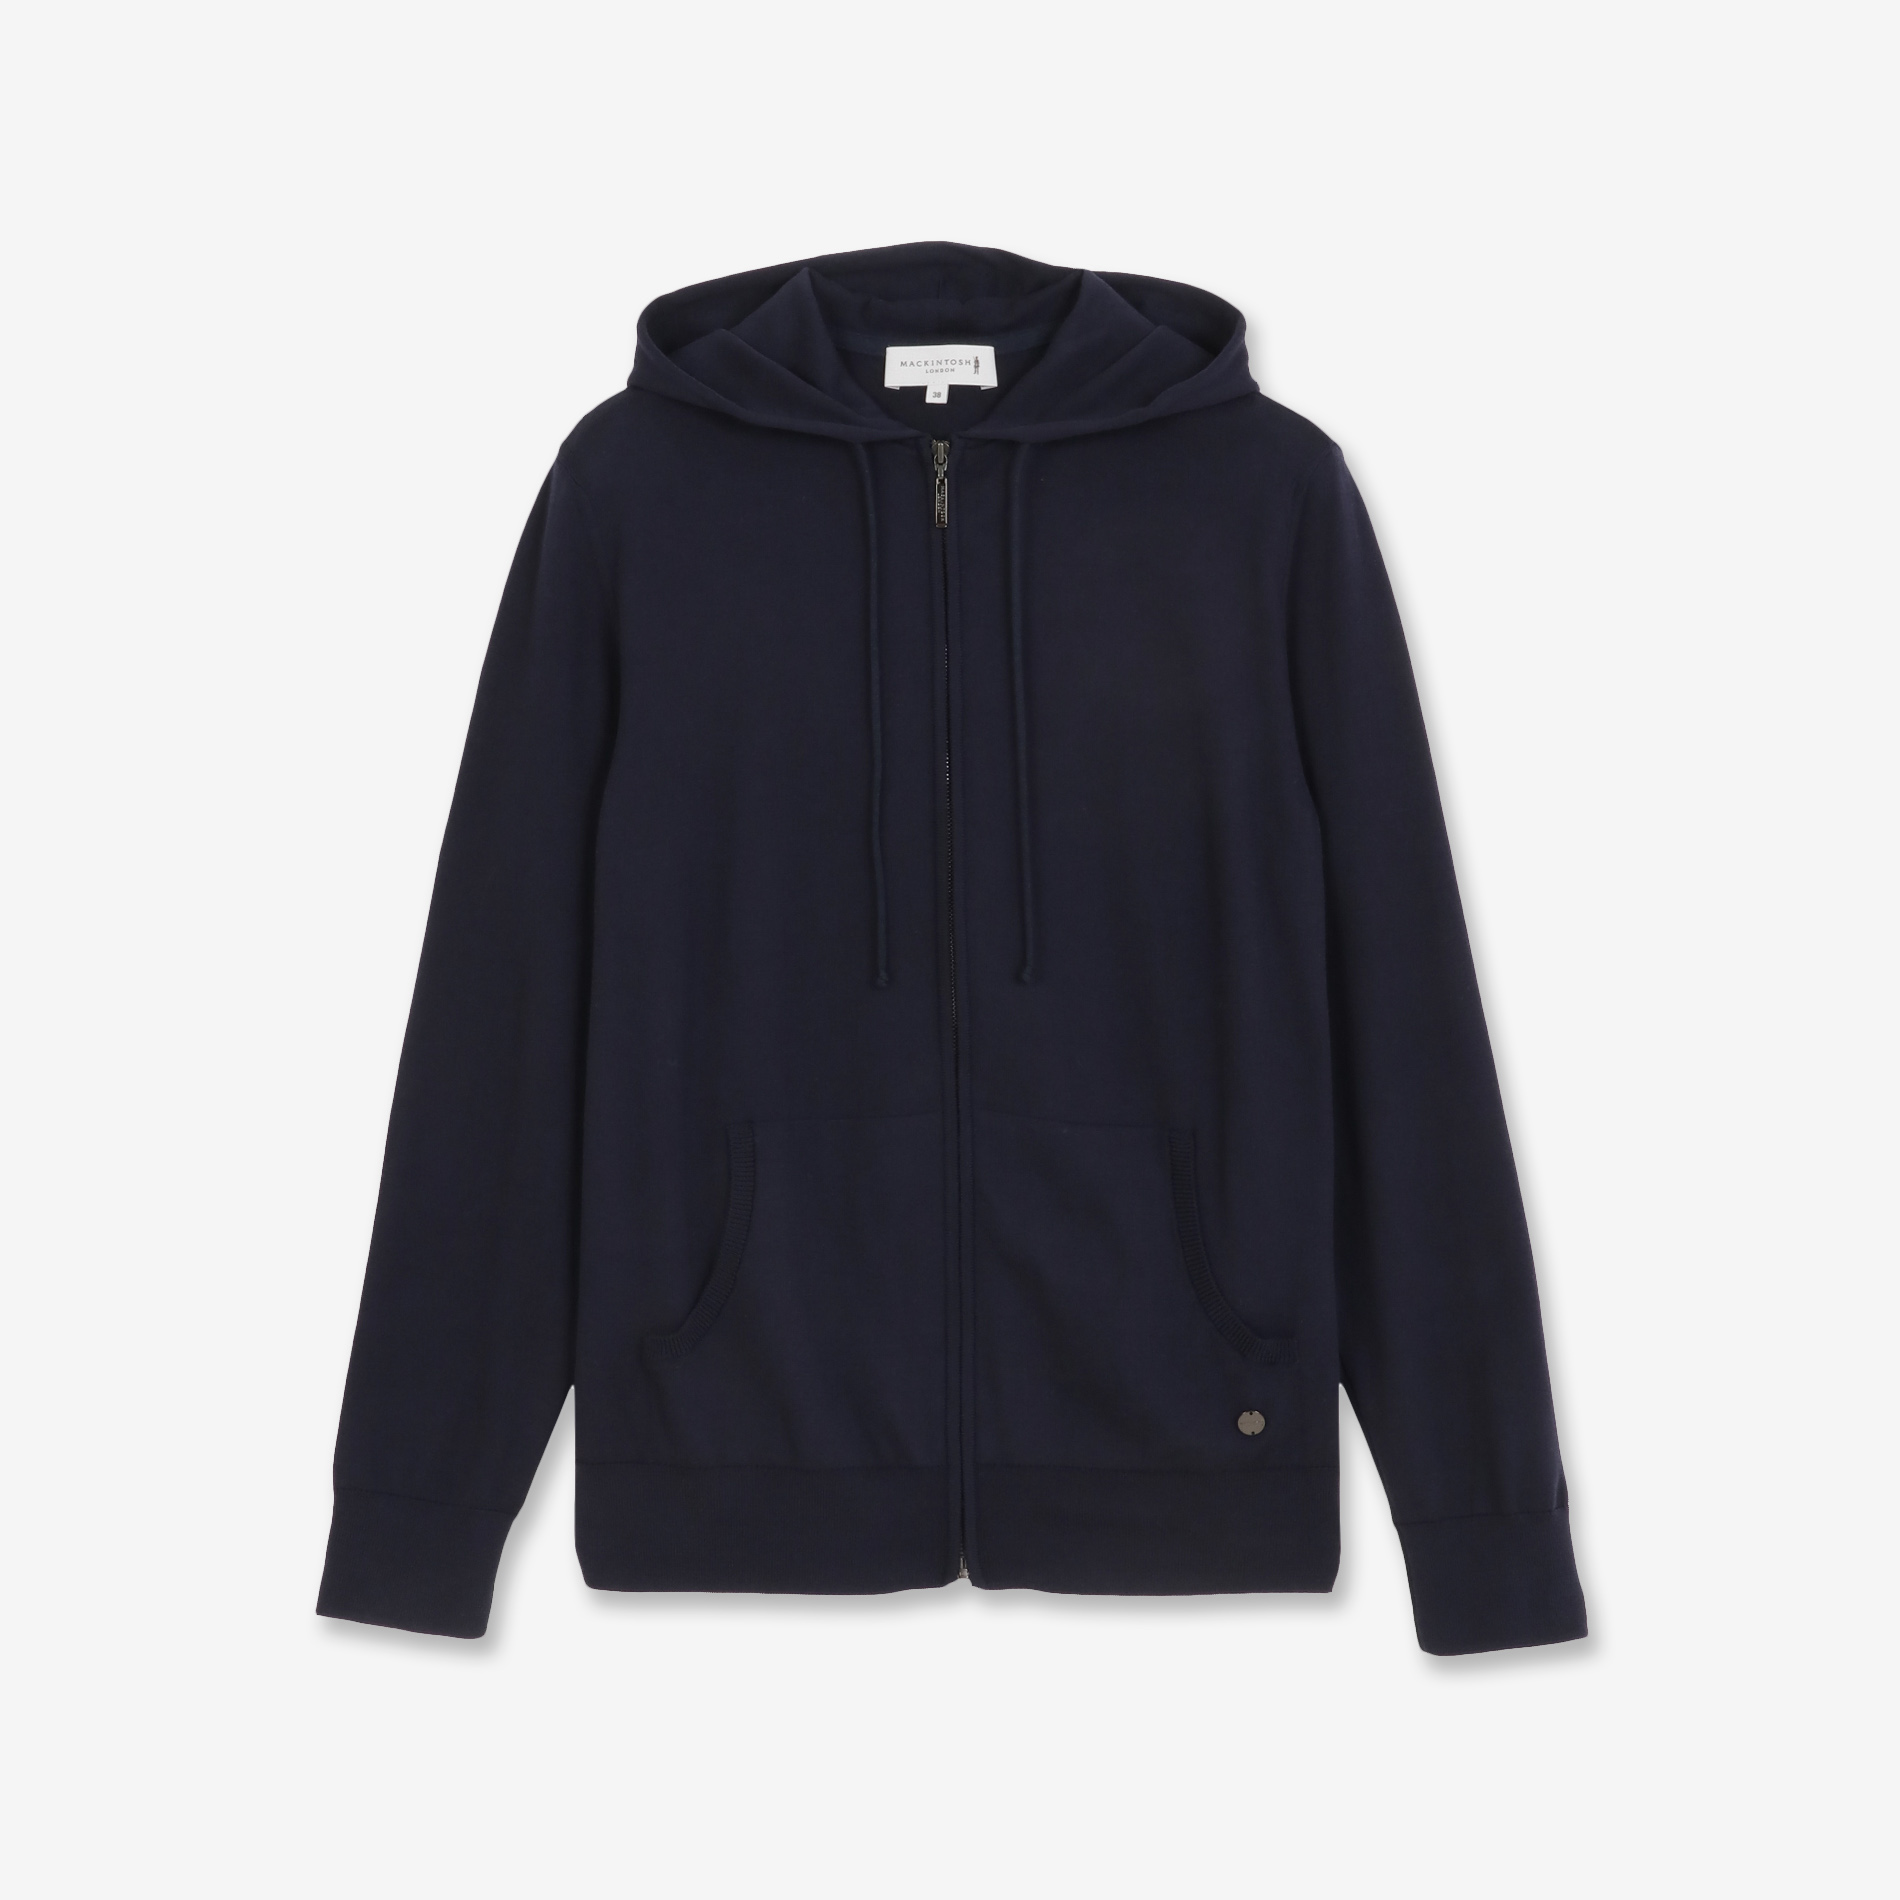 【The Essential Collection】シーアイランドコットンパーカー